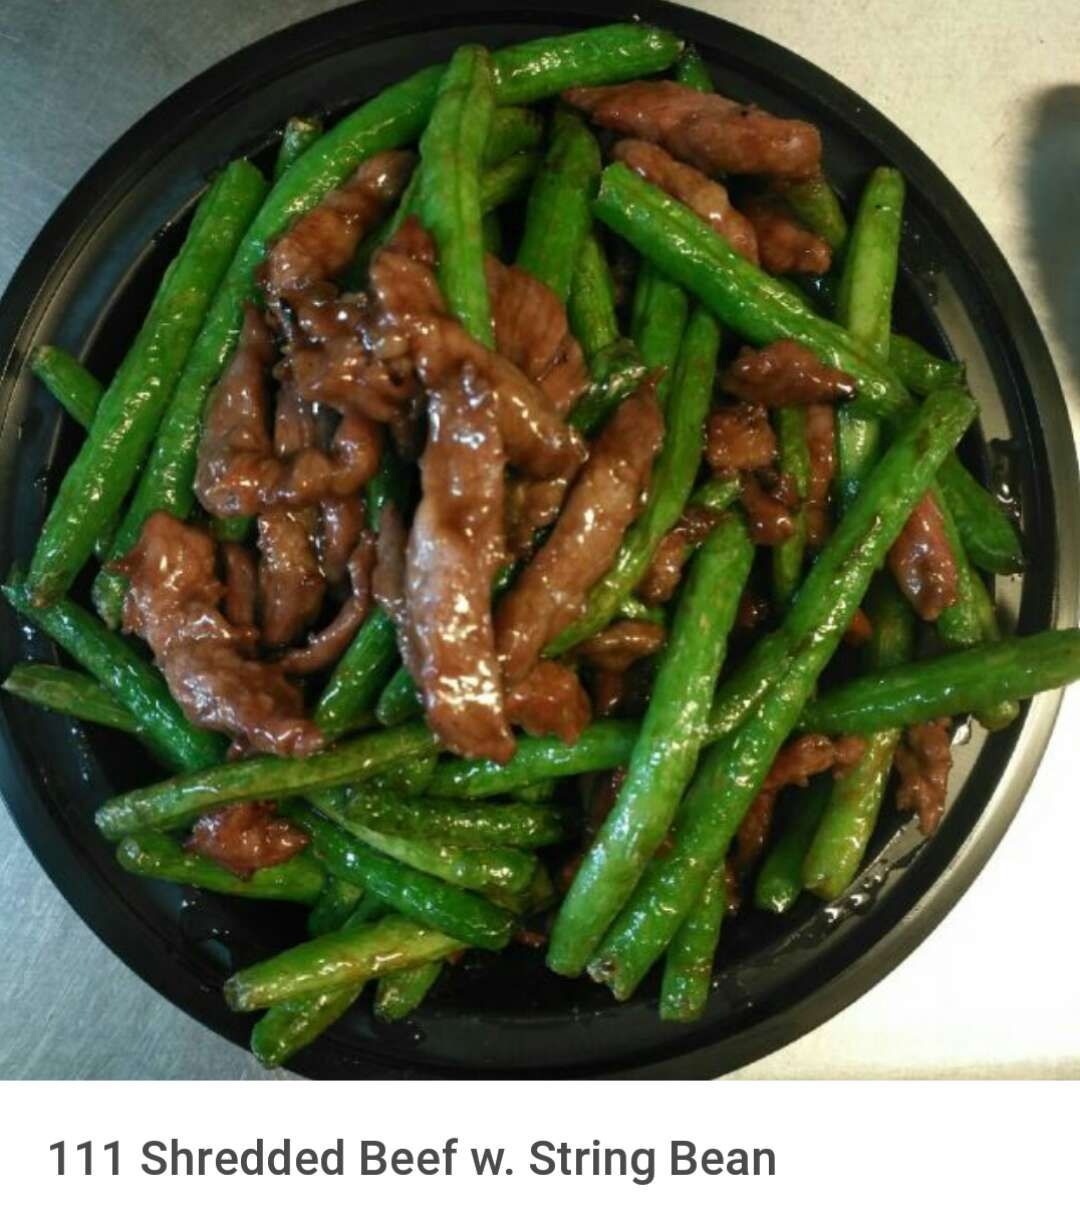 111. Shredded Beef w. String Bean